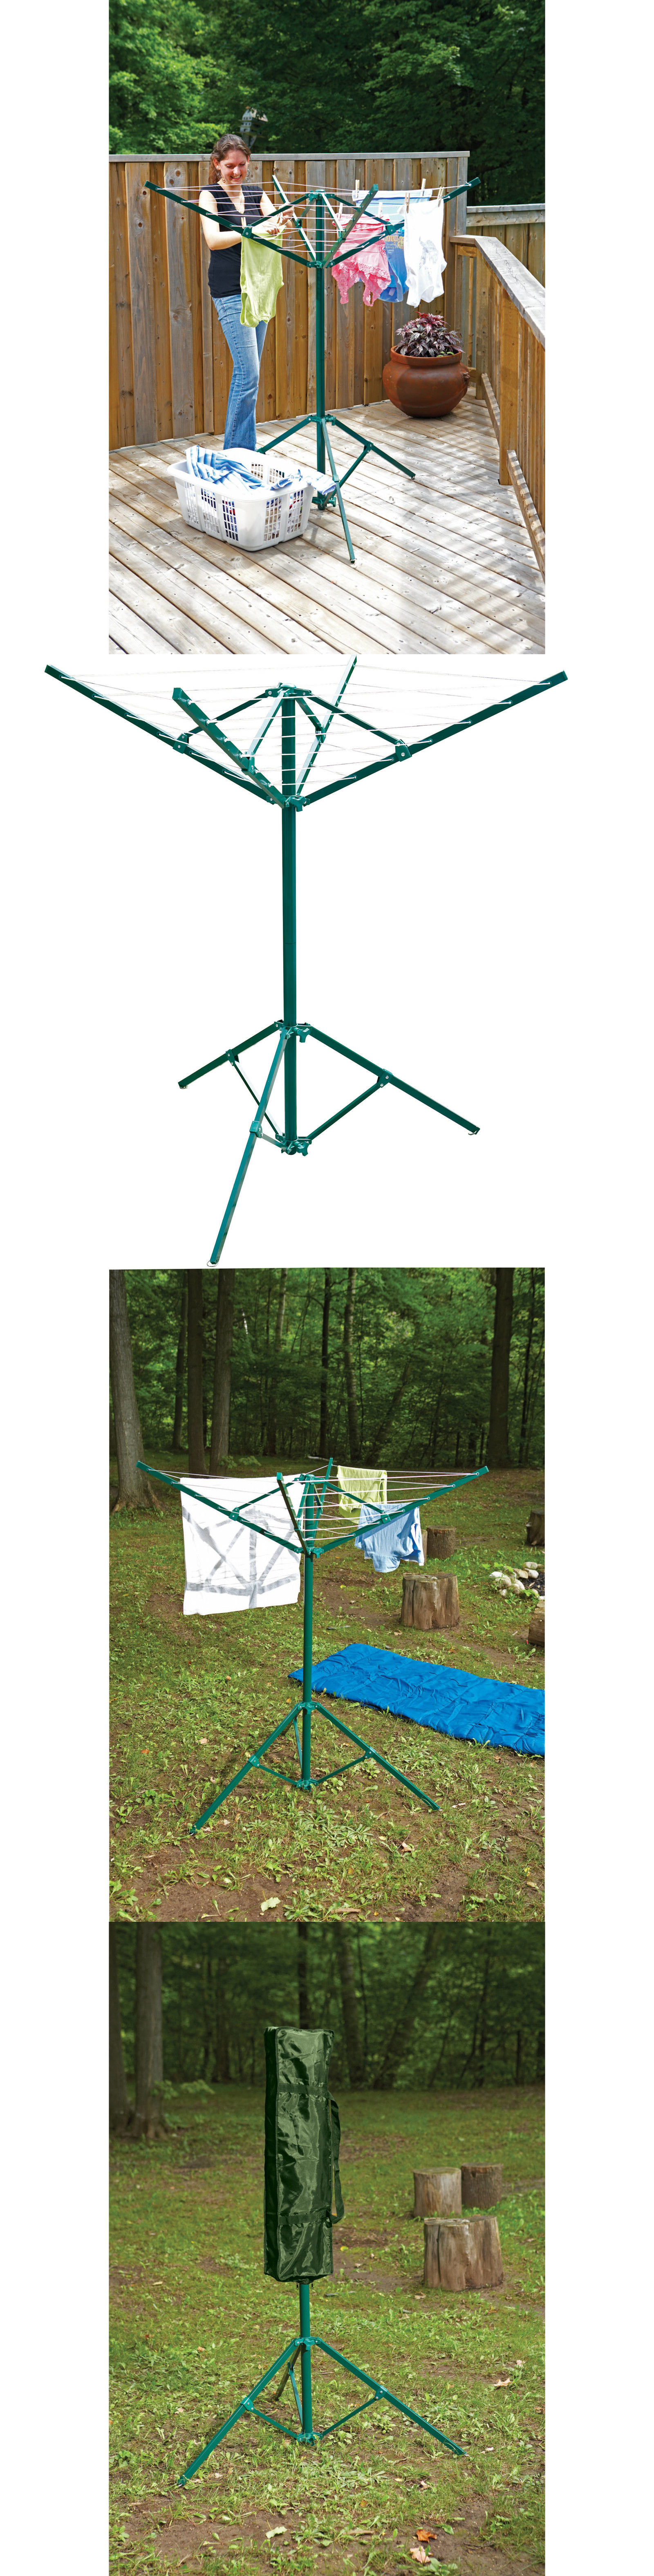 Clotheslines And Laundry Hangers 81241: Outdoor Portable Clothes Dryer  Rotary Clothesline Laundry Line Drying Rack